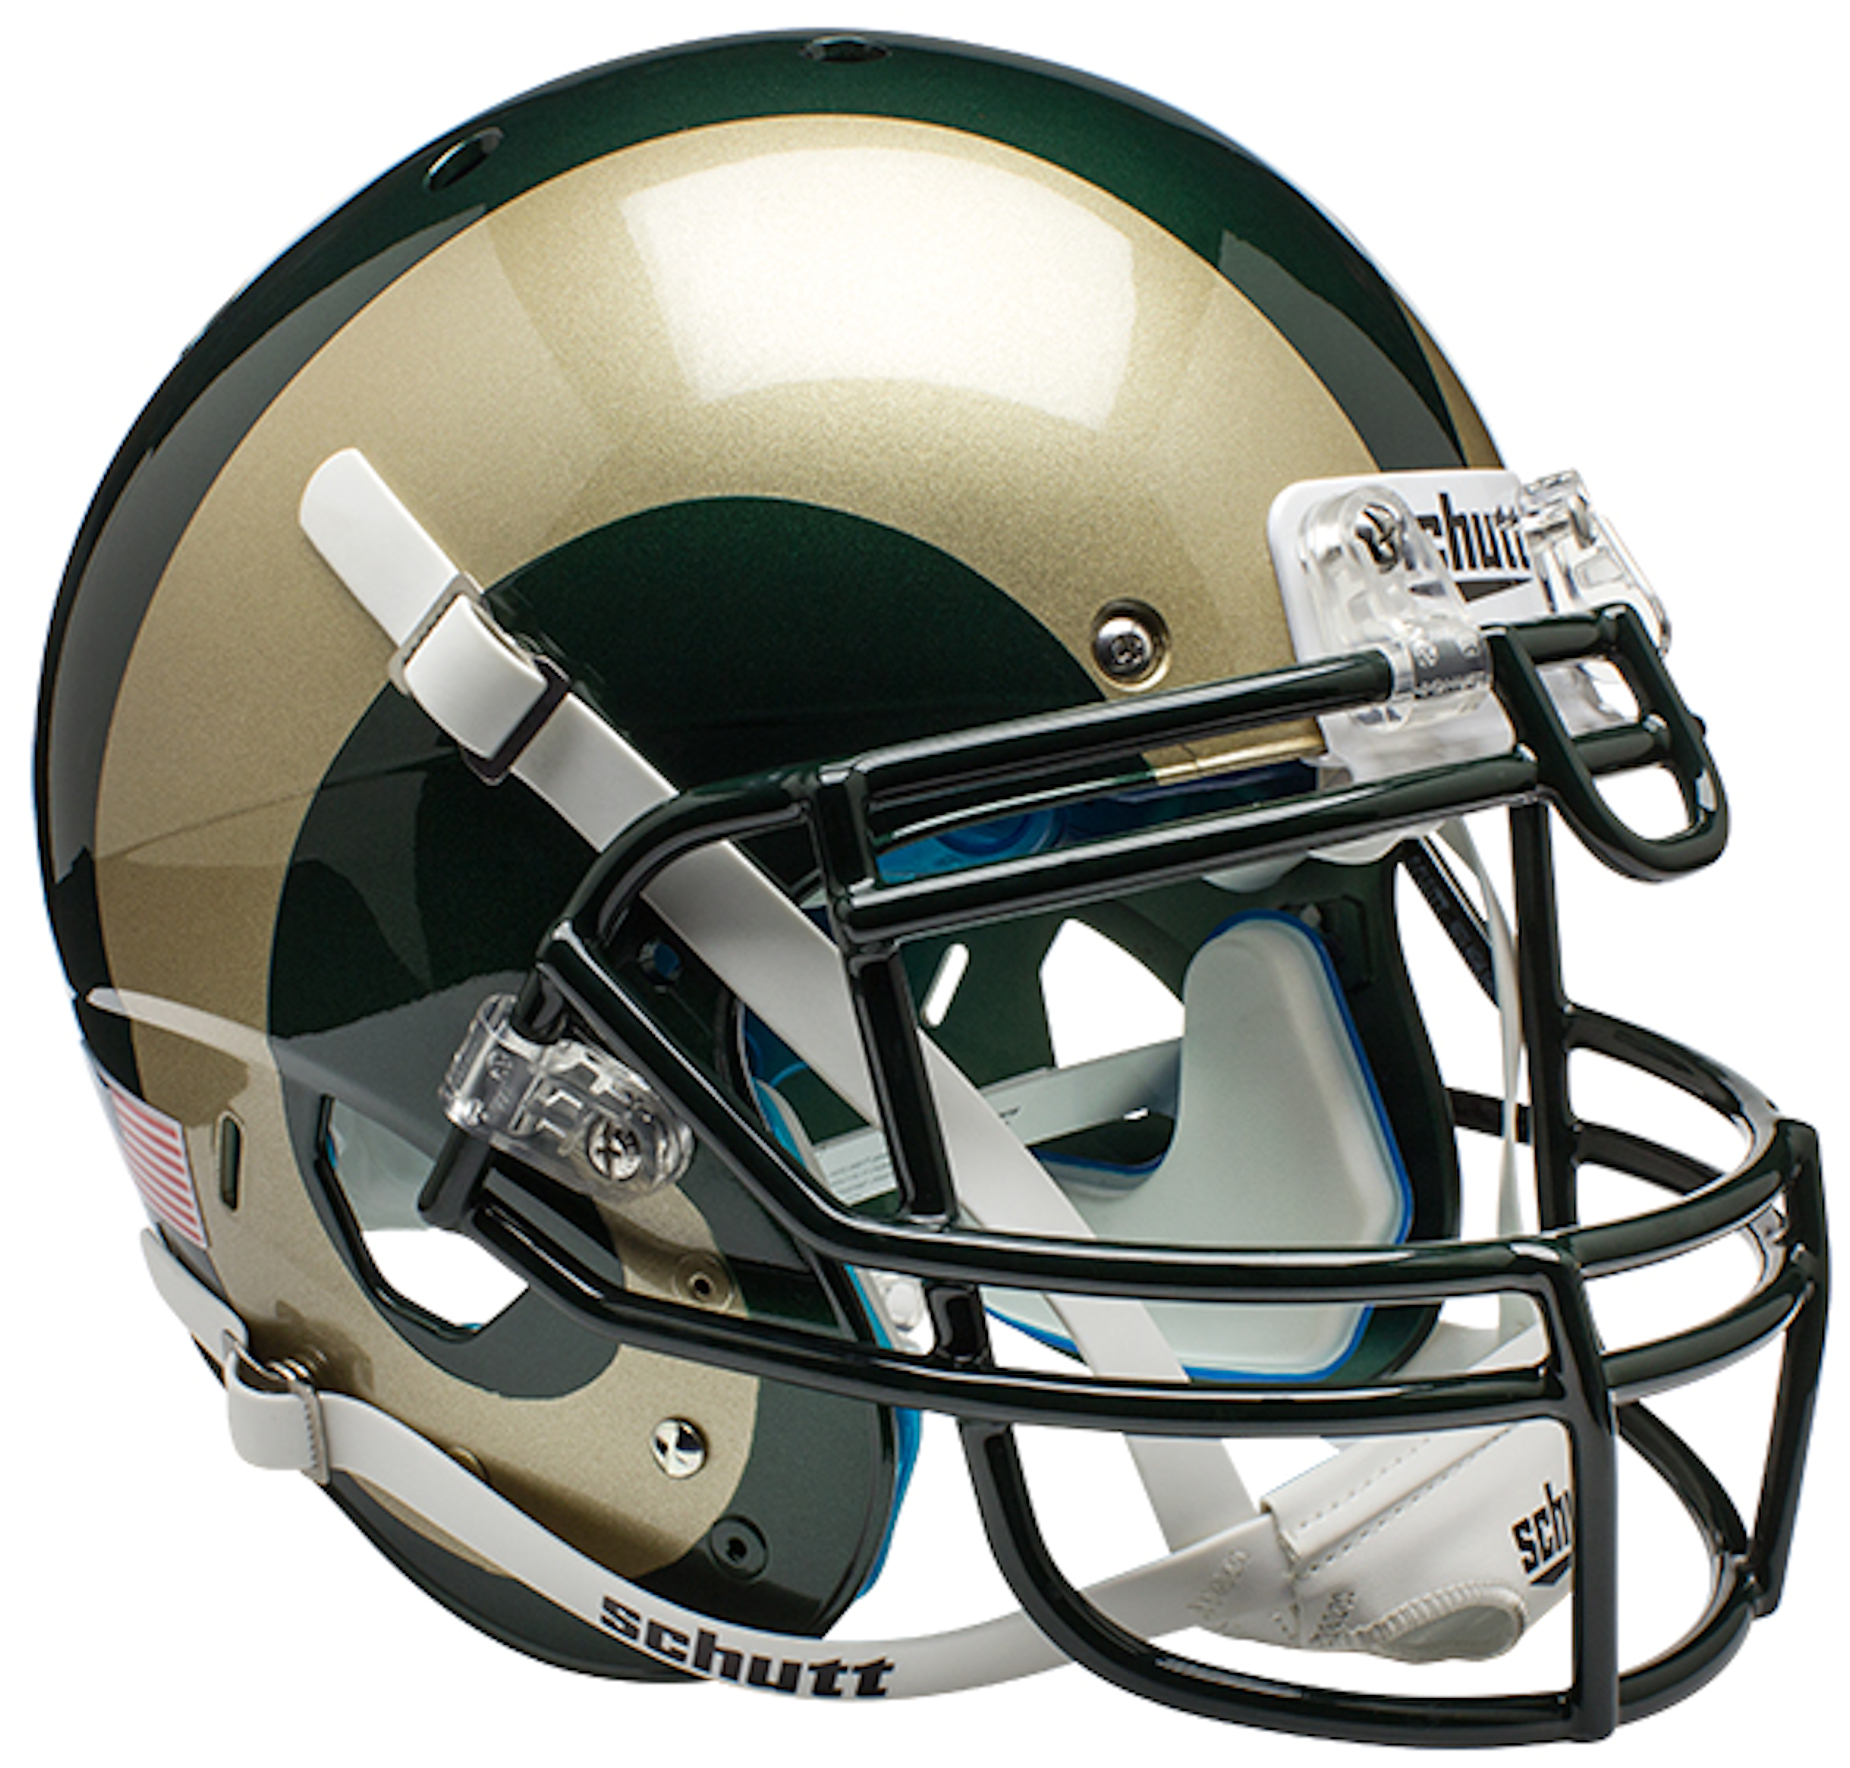 Colorado State Rams Authentic College XP Football Helmet Schutt